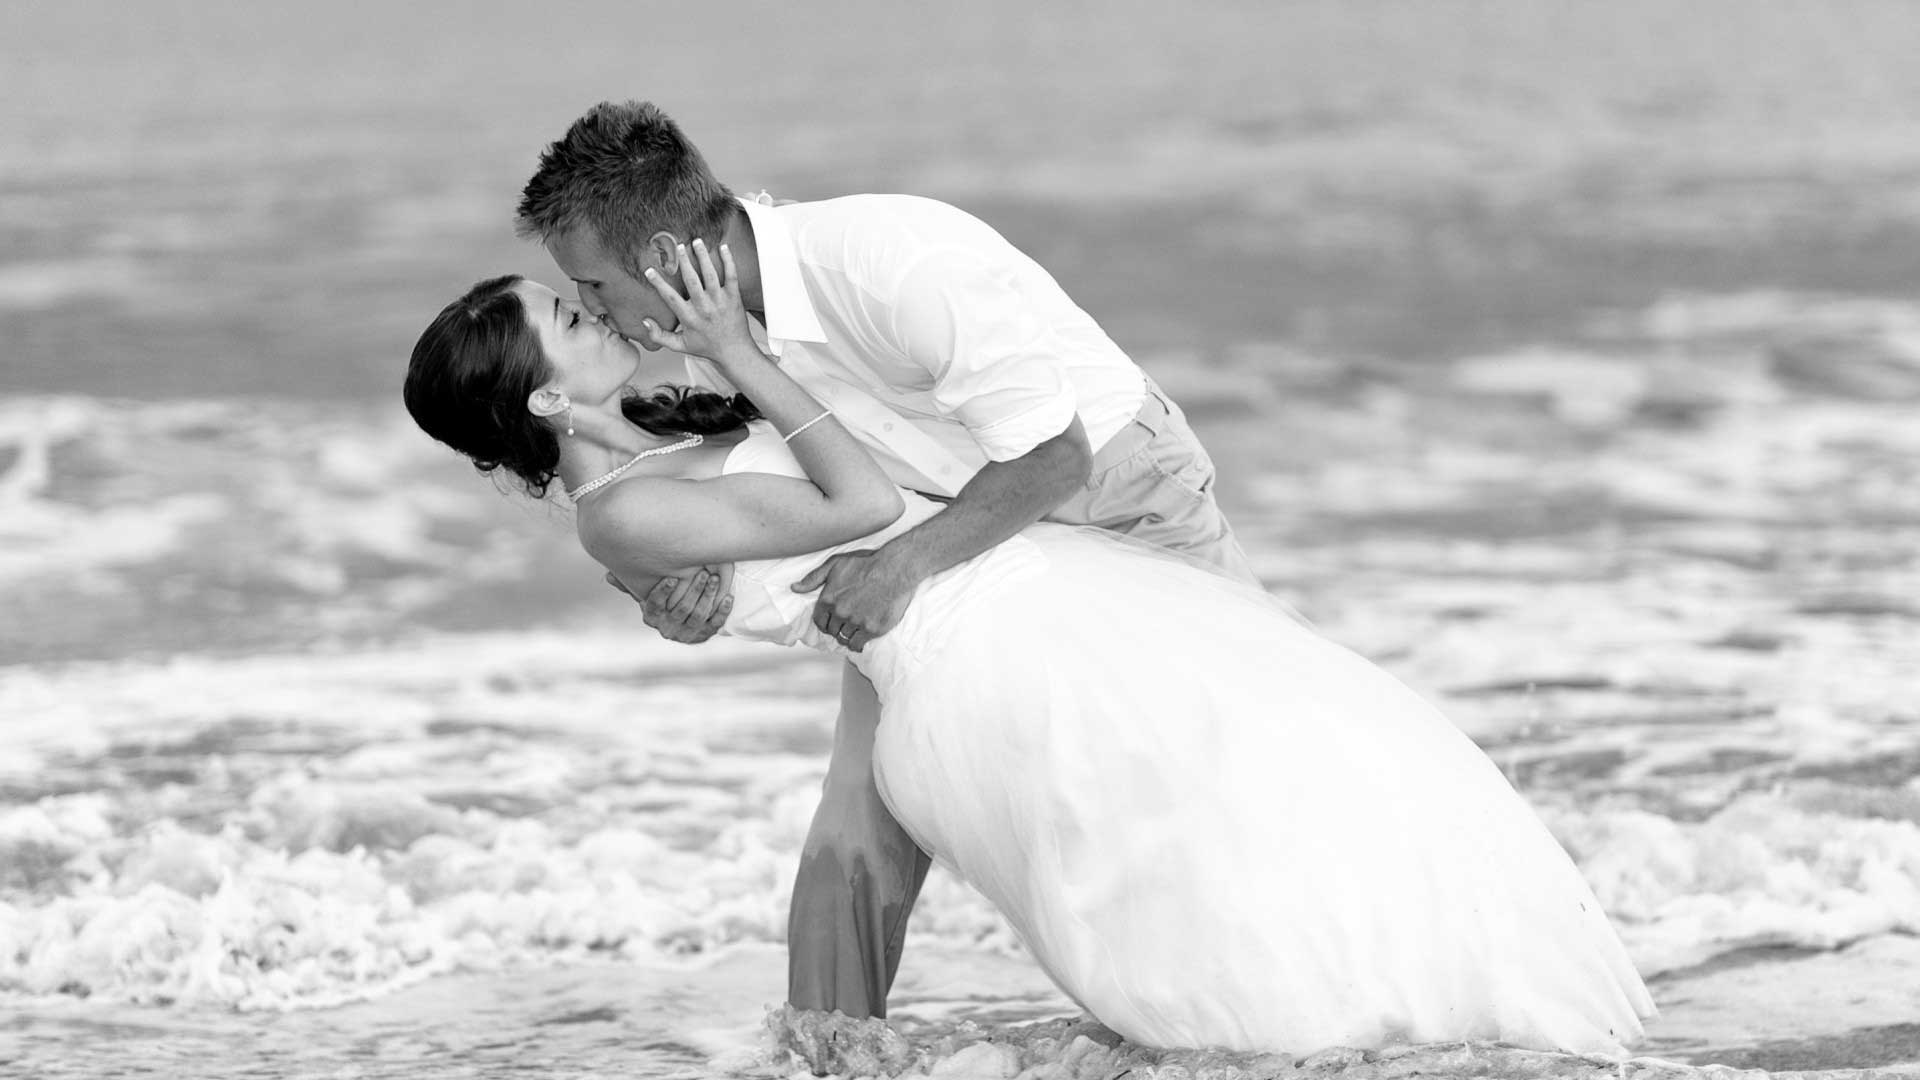 Happy Kiss Day 2016 HD Wallpapers - Freshmorningquotes